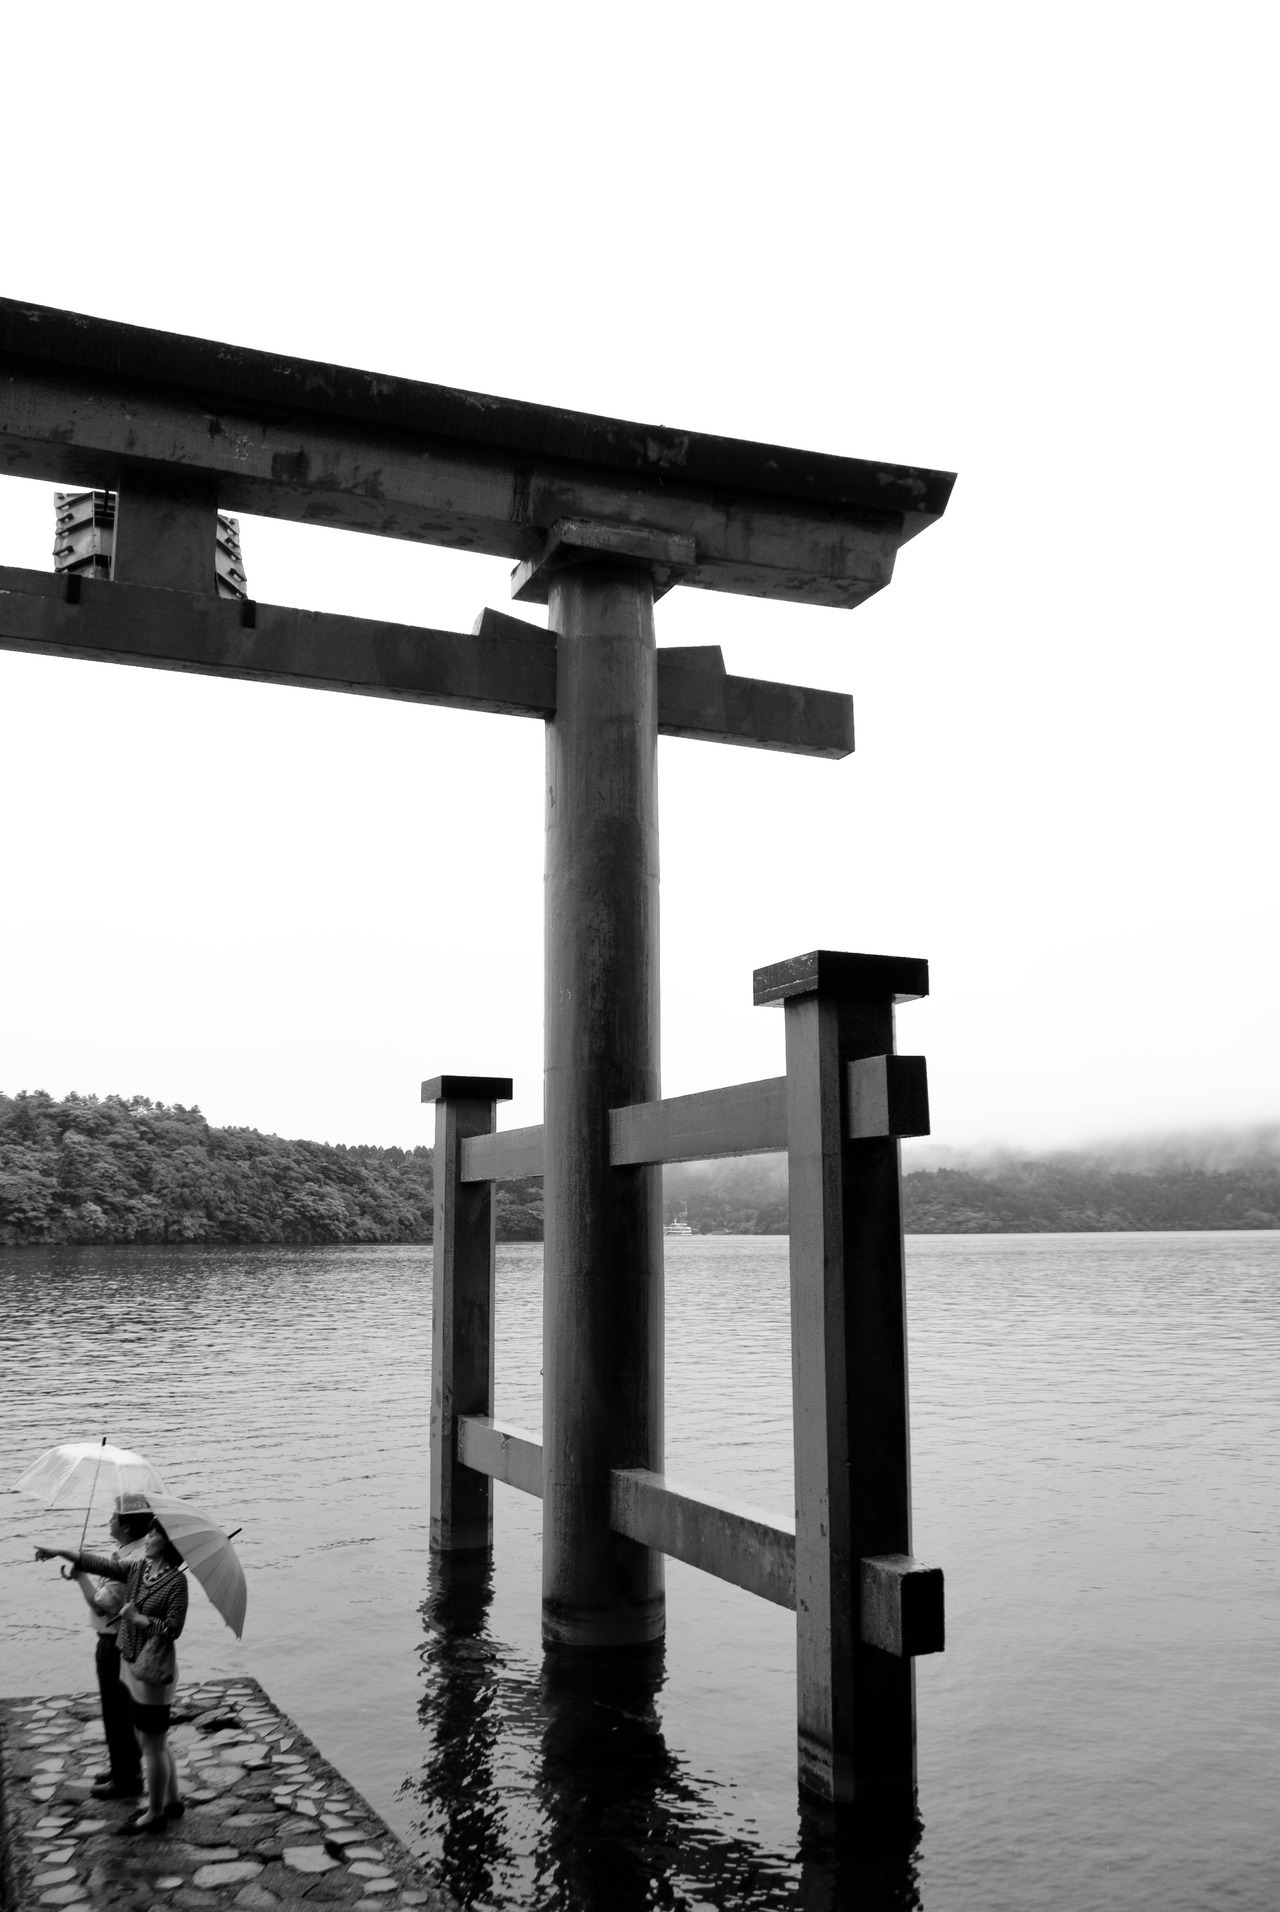 taken at Hakone jinja on Saturday. very probably one of the most beautiful places I have ever seen.